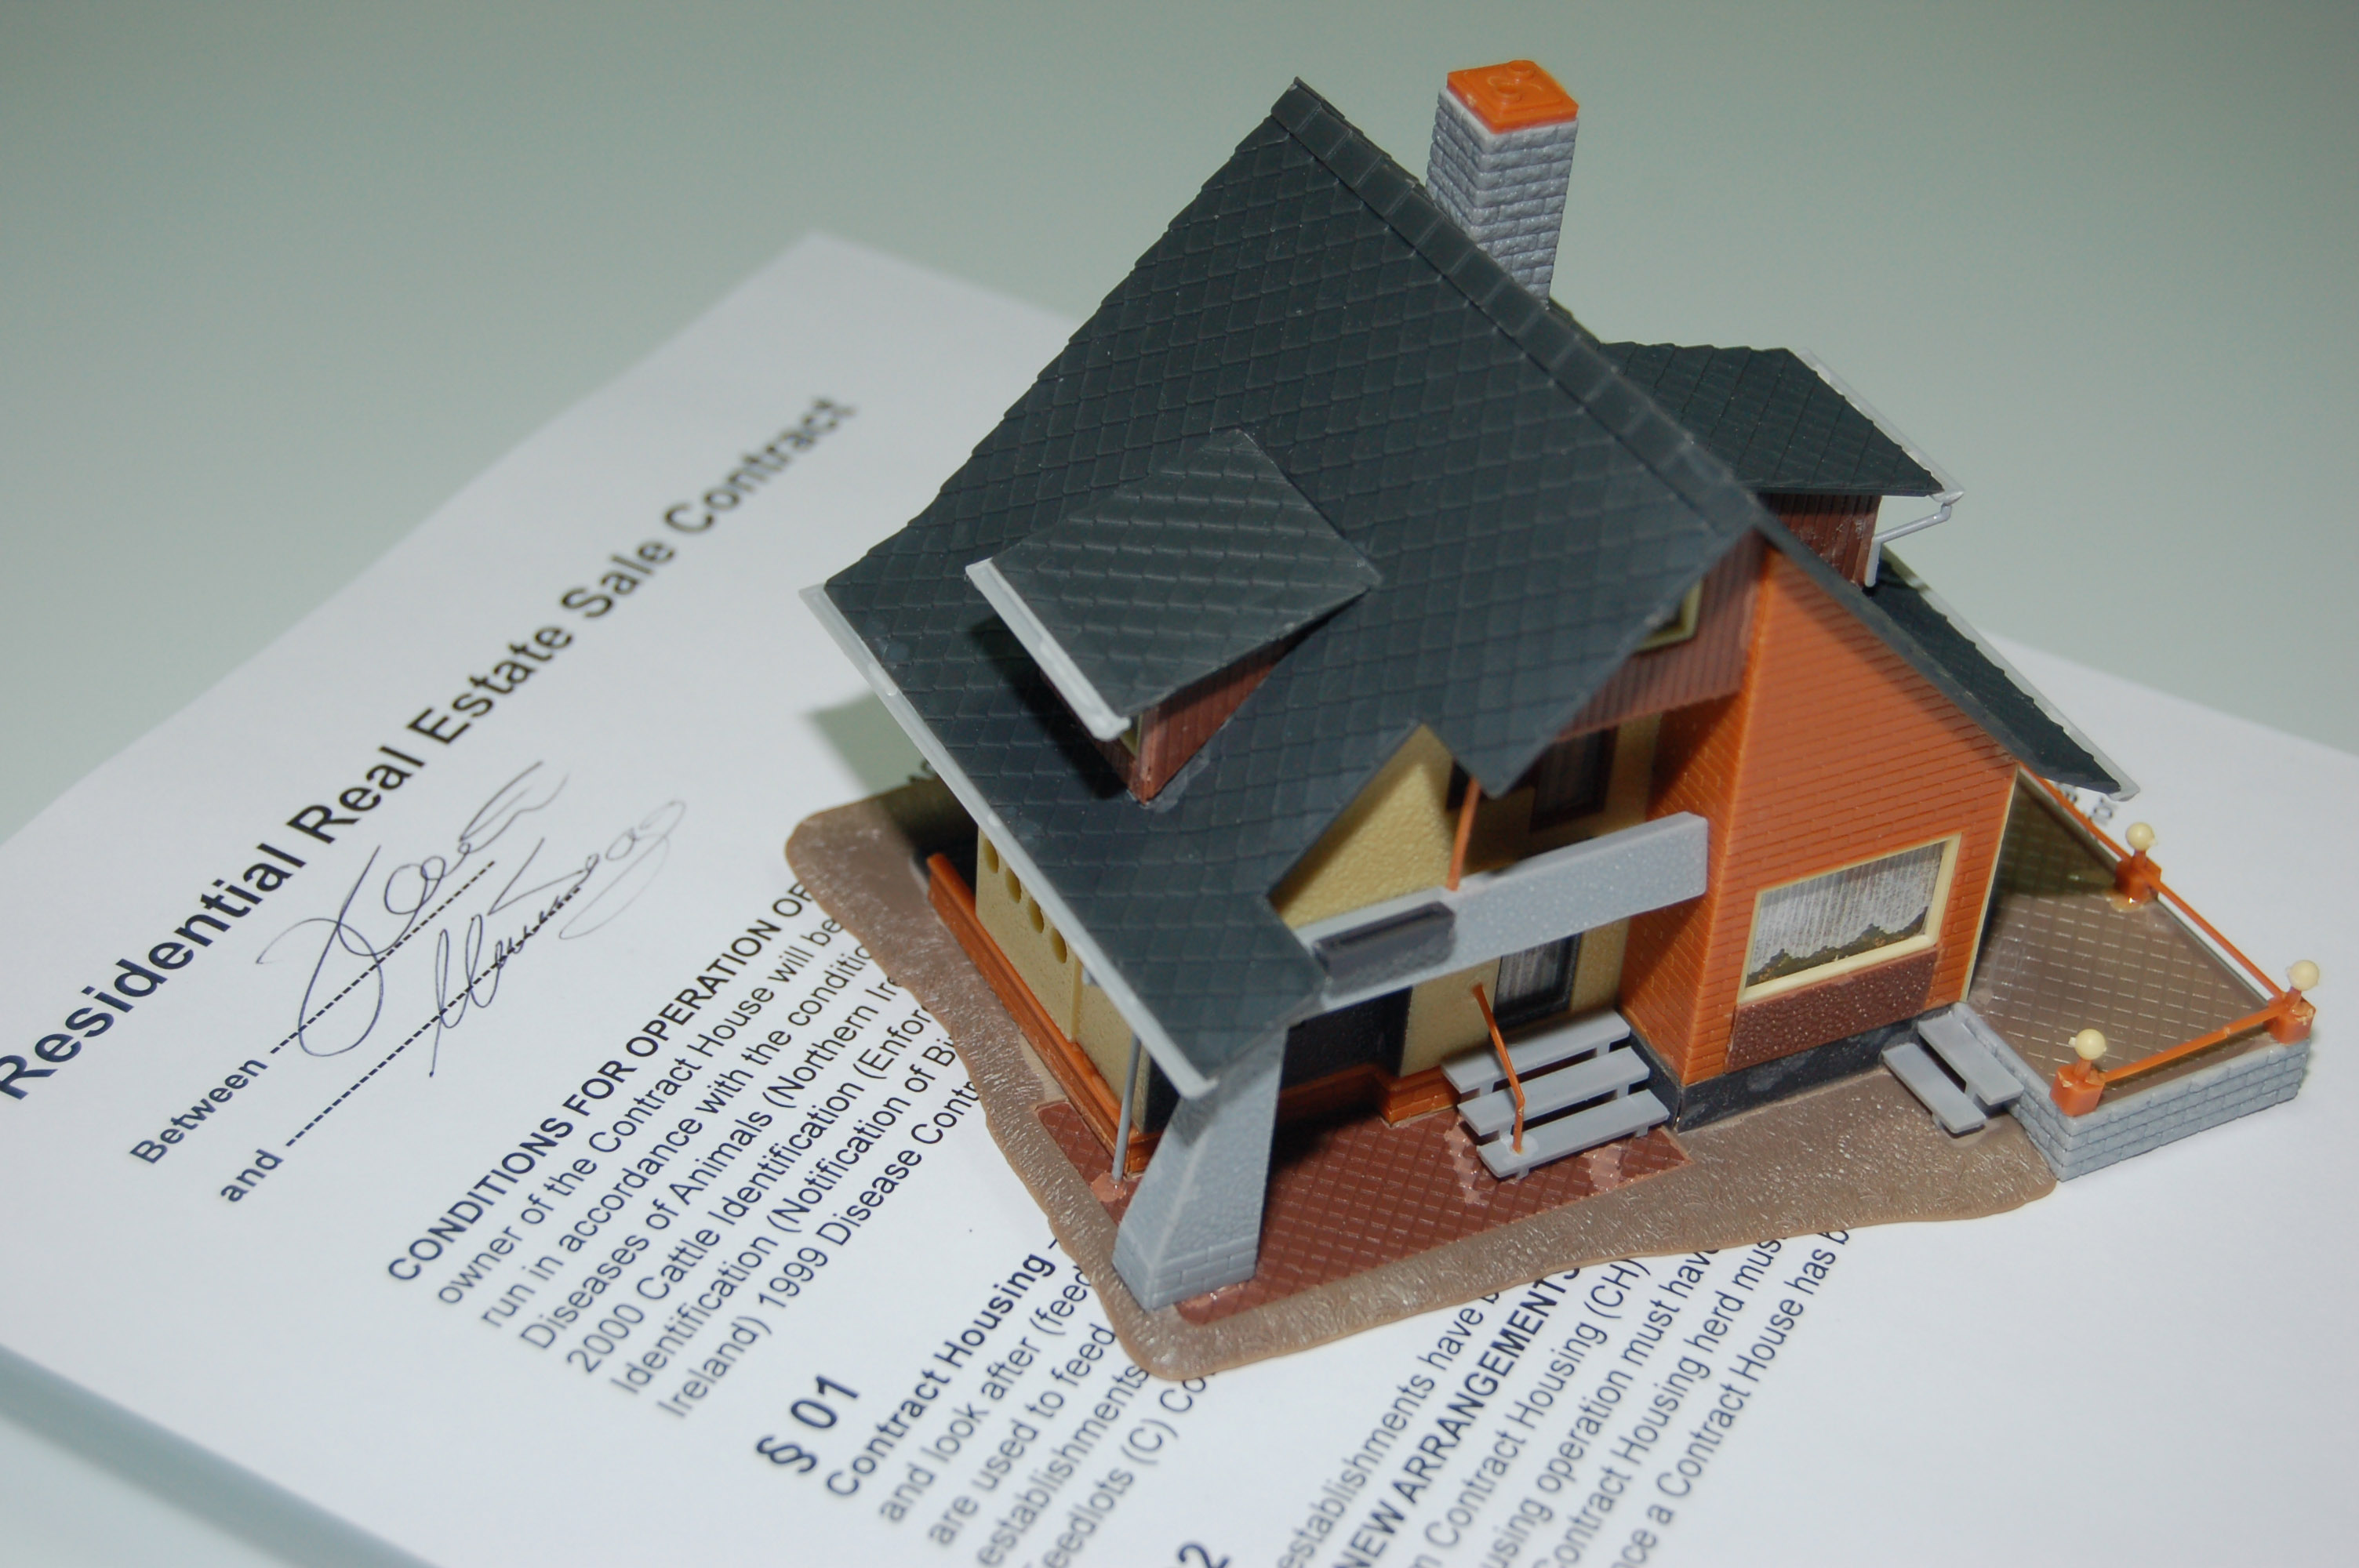 House Sale Contract | House Sale Contract Lawyers Legal Forms And Documents